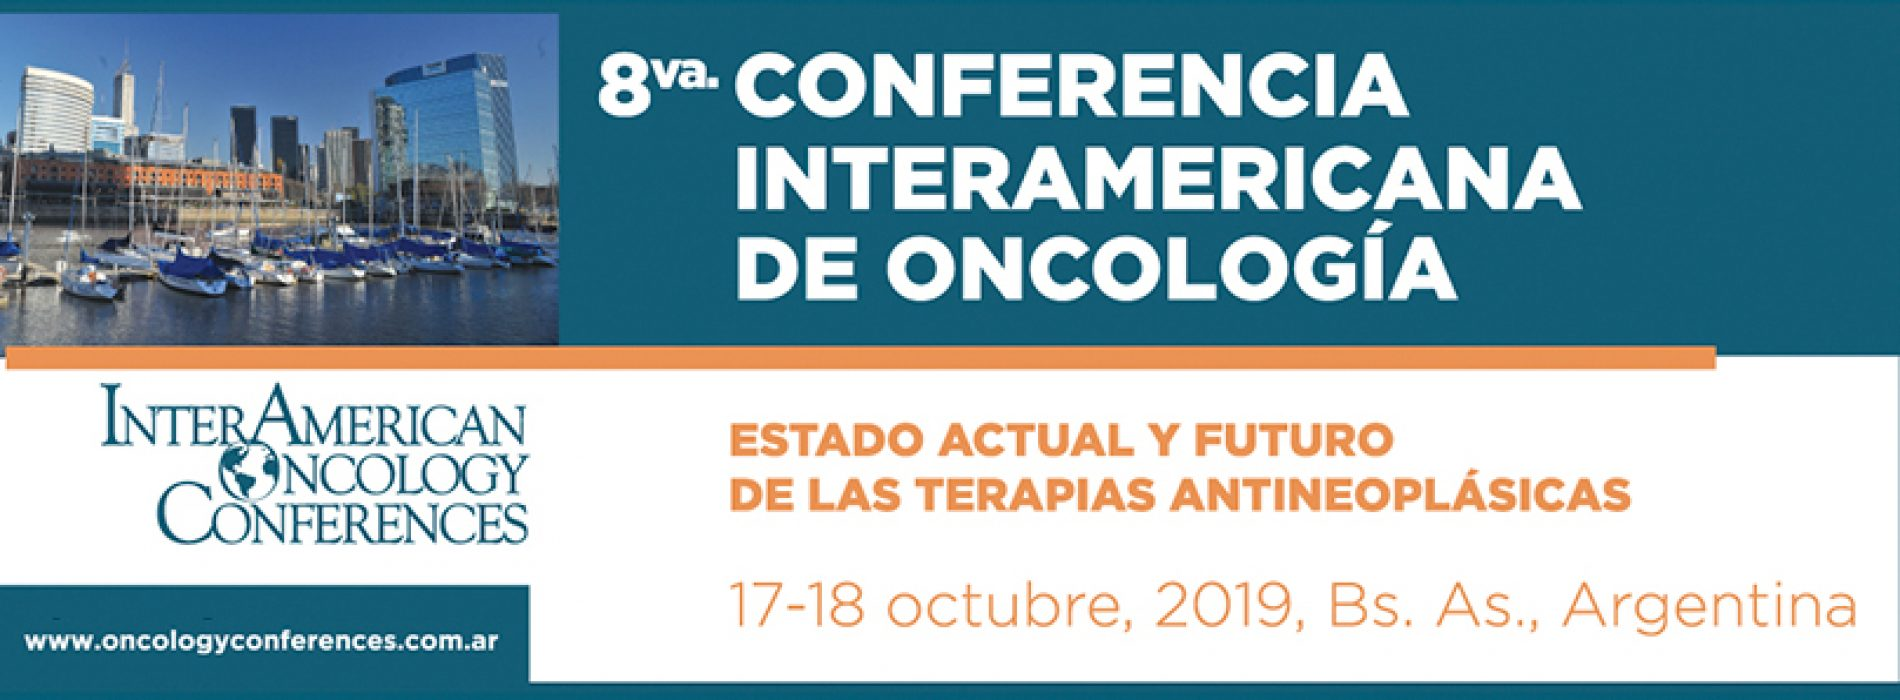 Inter-American Conference of Oncology 8th | Society for